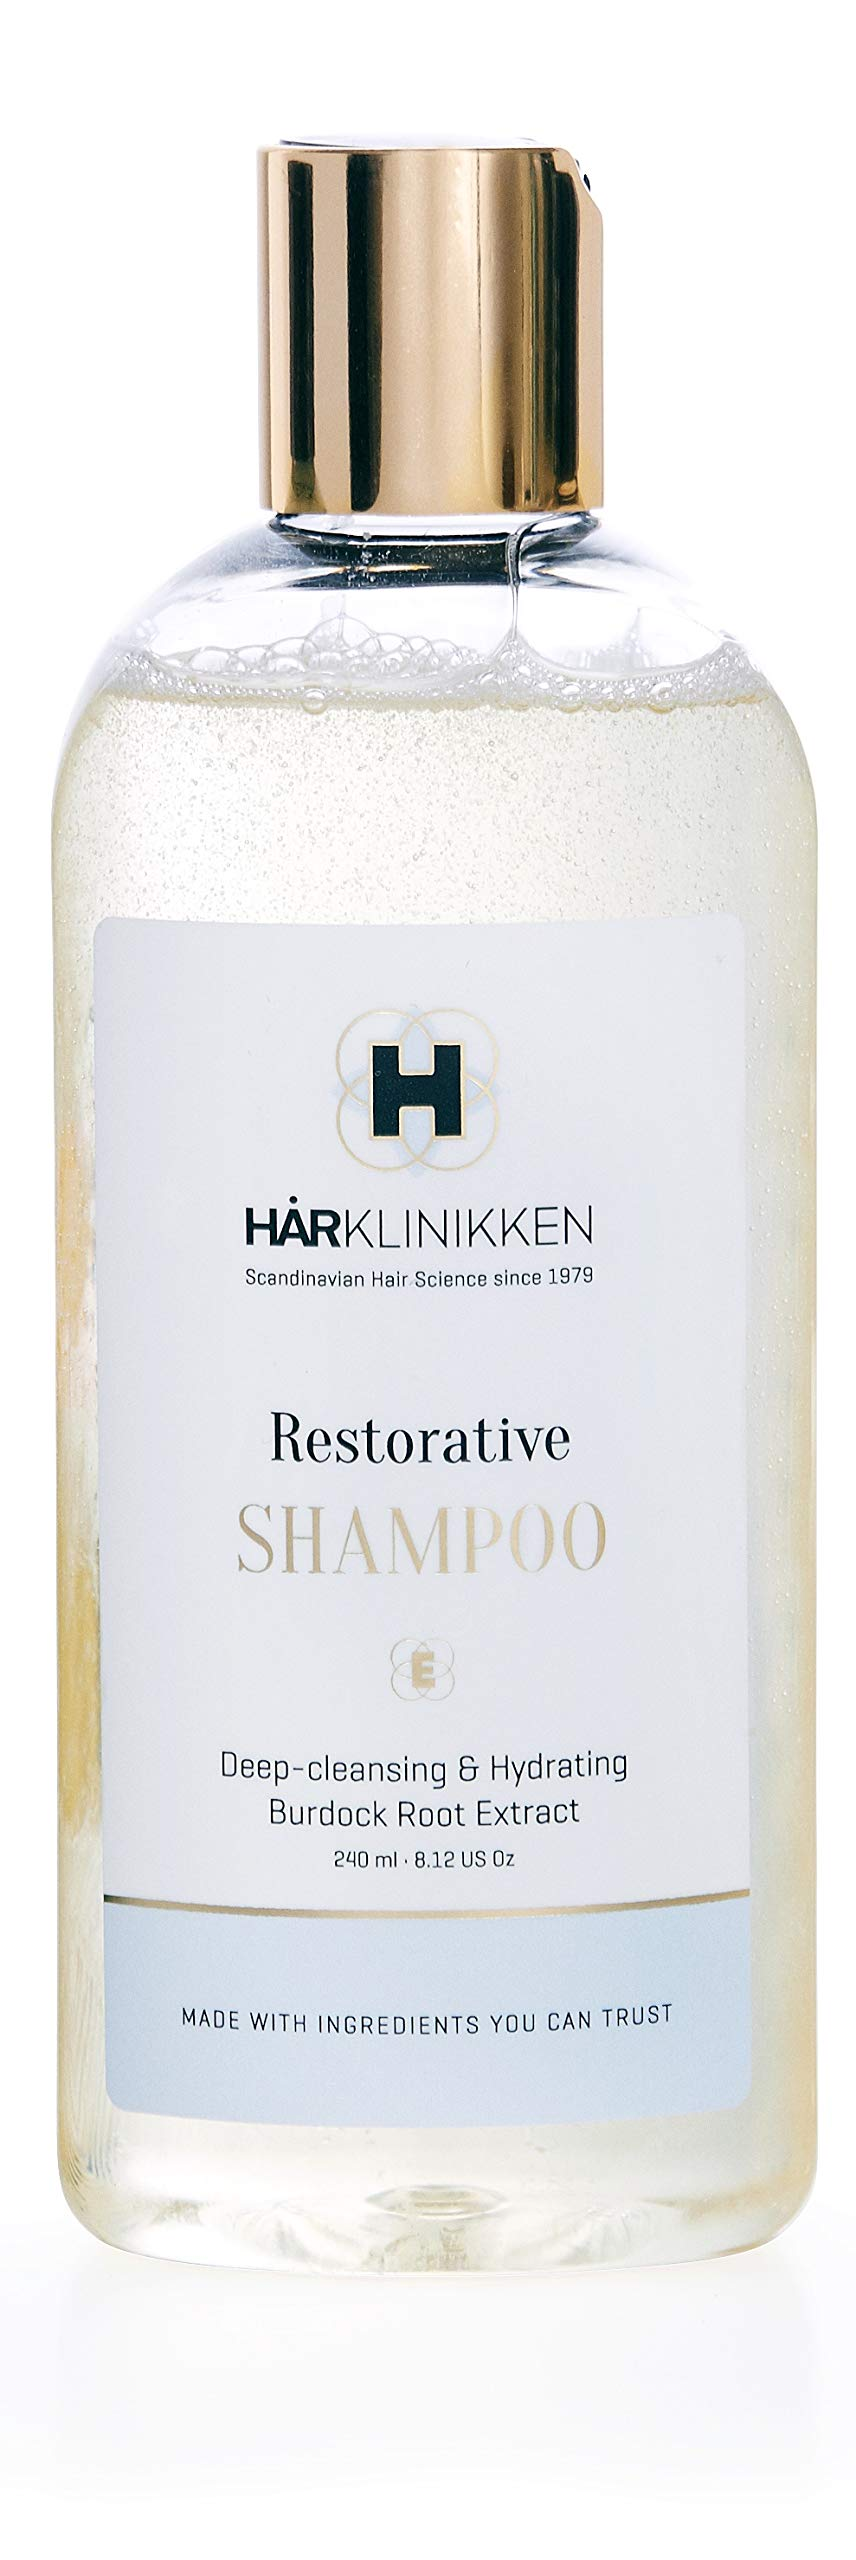 Harklinikken Advanced Cleansing & Treatment Set | 8.45 Oz. Balancing Shampoo & 8.45 Oz Restorative Shampoo | When washing daily: Alternate Product - For All Hair Types - Natural & Plant-Based by Harklinikken (Image #3)